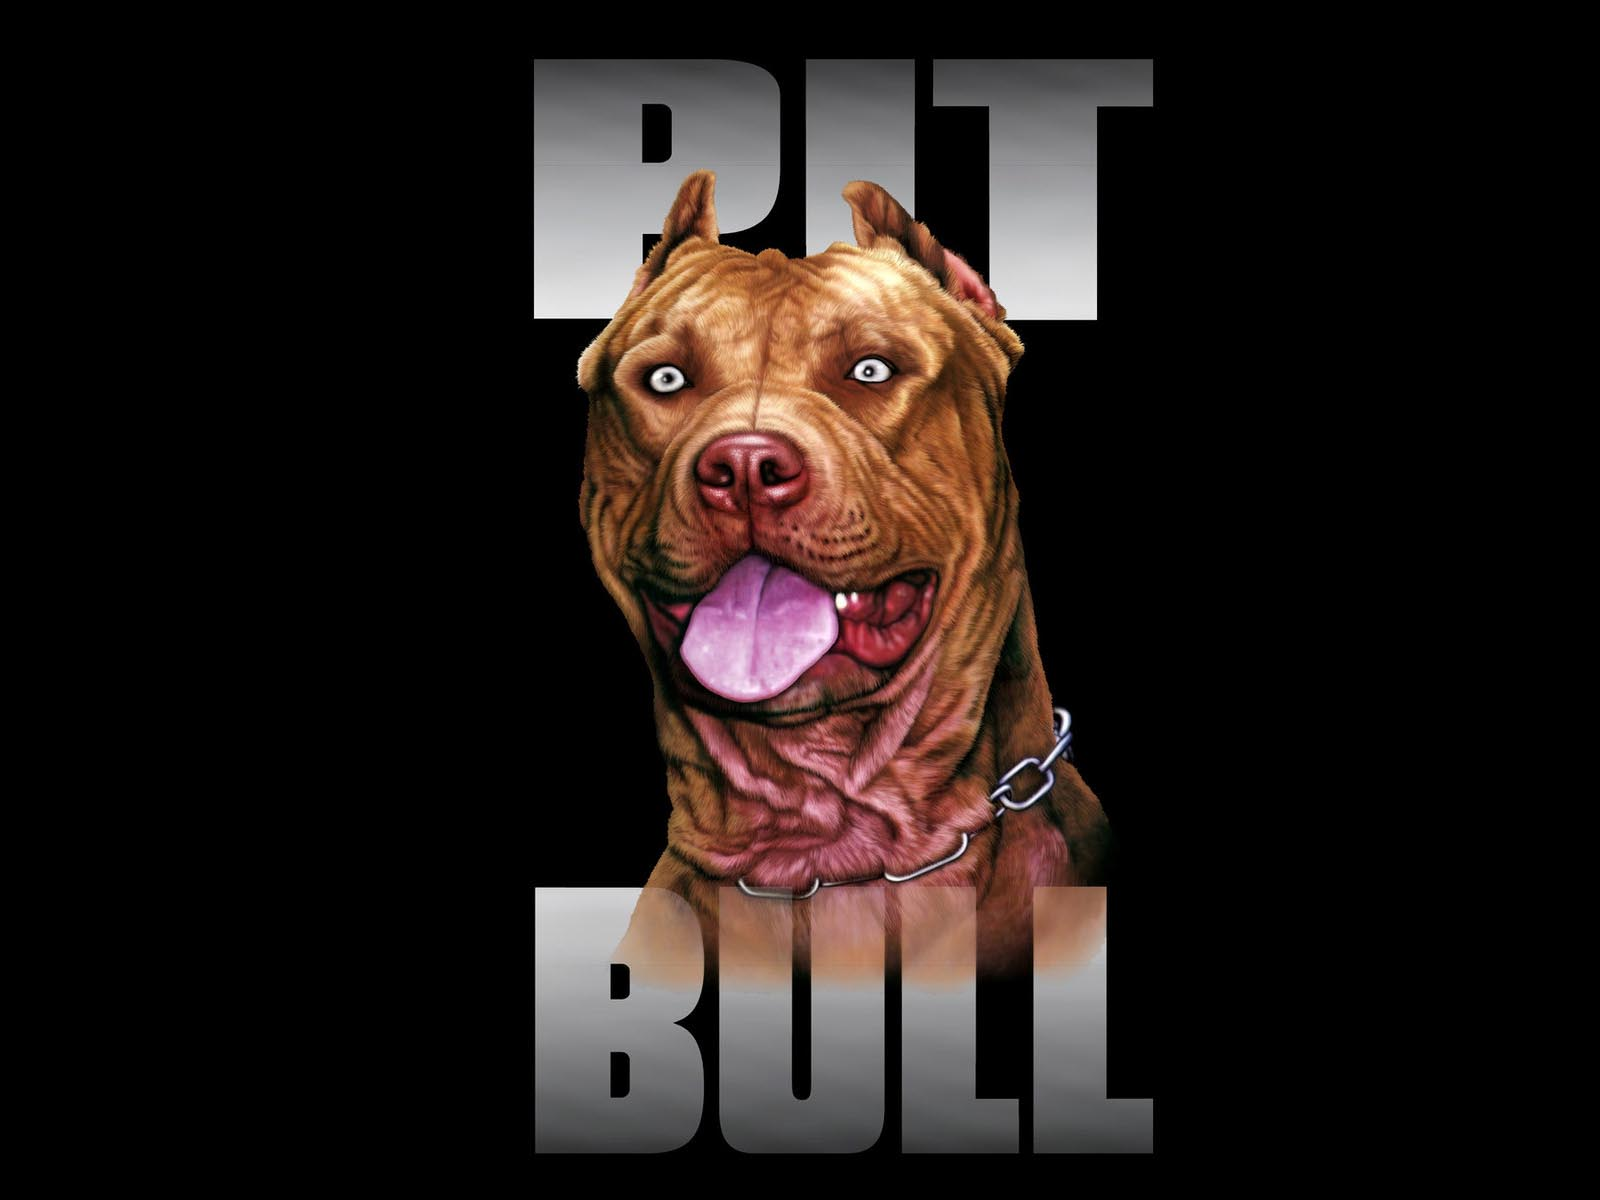 pit bull dog breed wallpaper - Animal Backgrounds